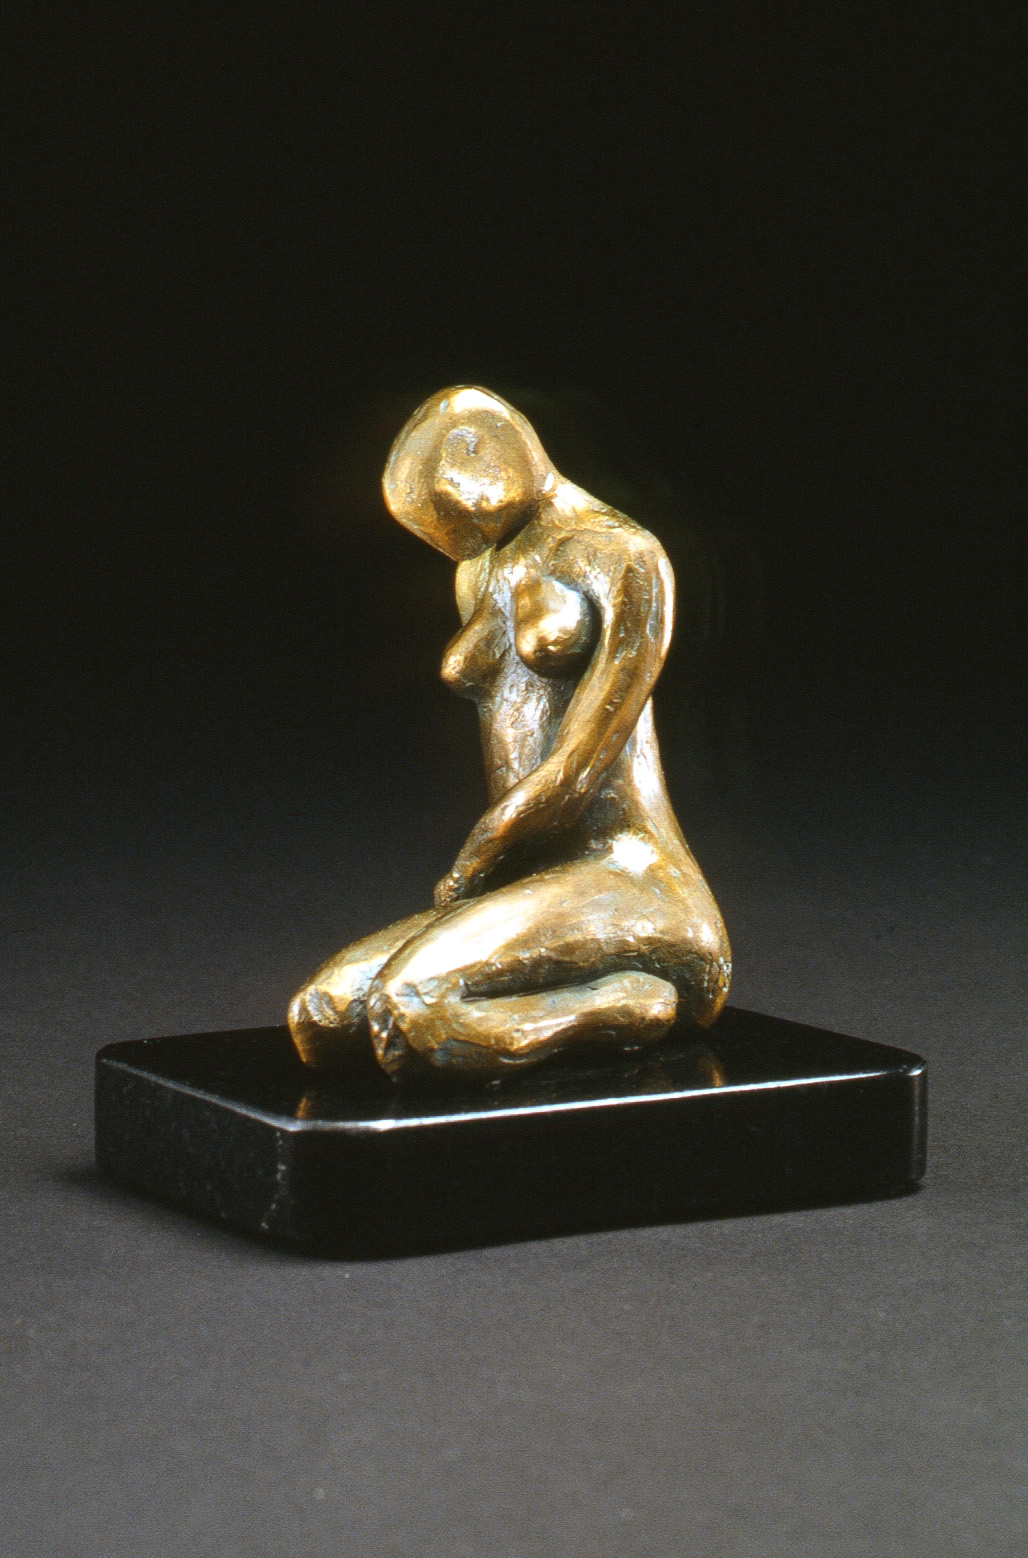 La Femme Assise (1999) Bronze, Edition: 30, 5.6x3x3in. $950